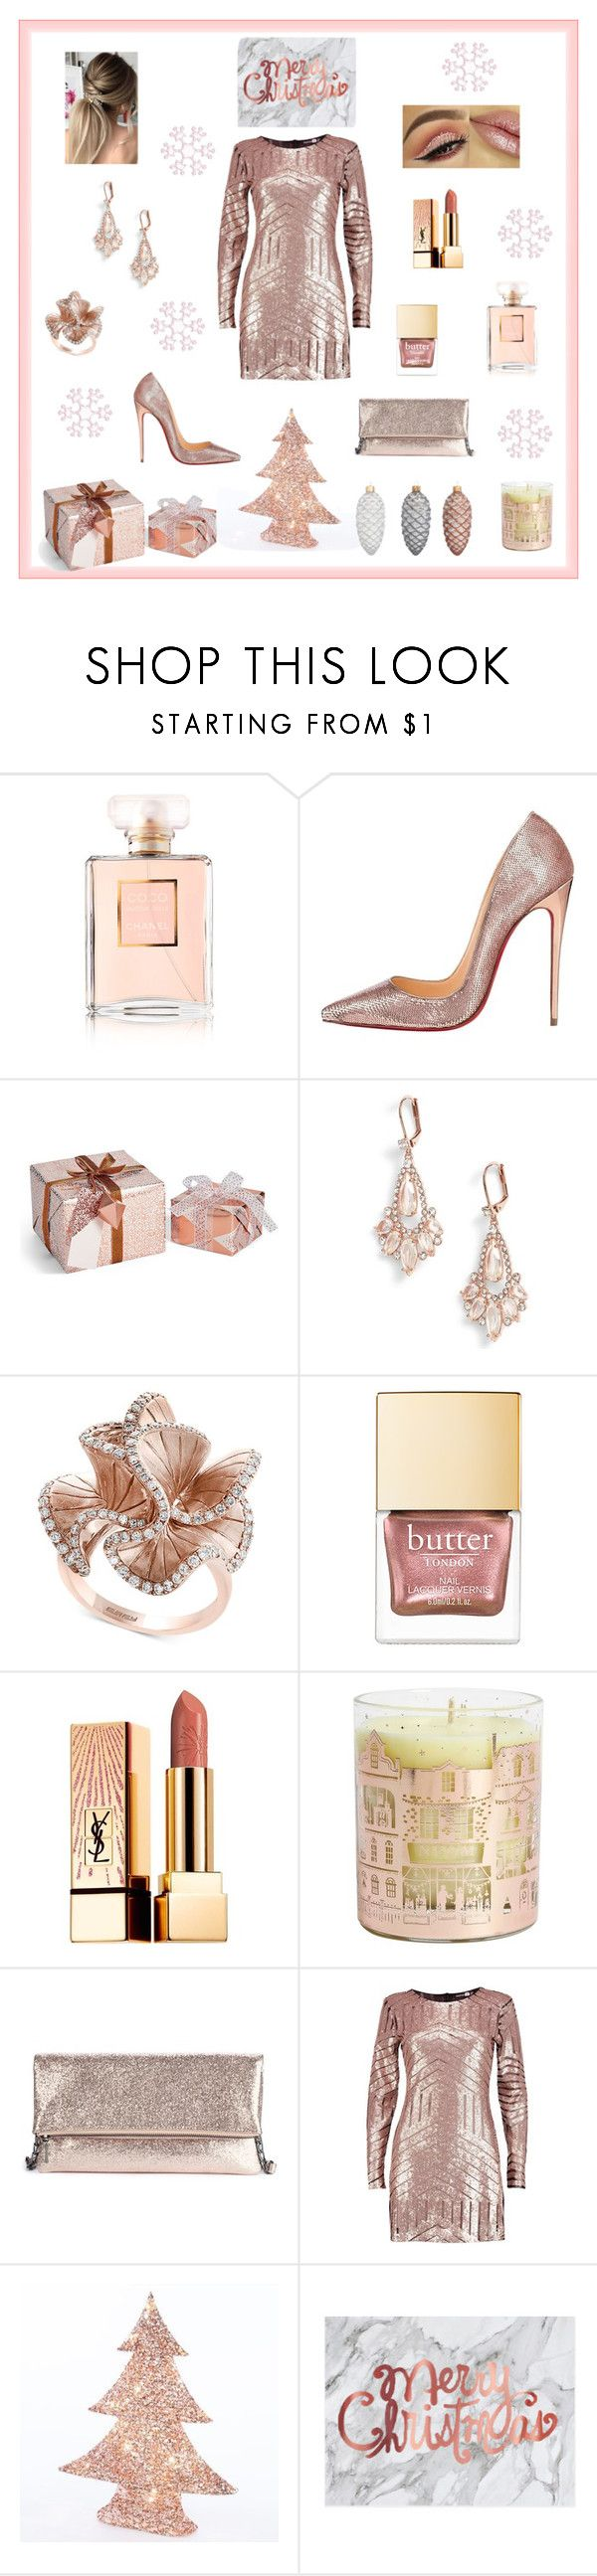 """Christmas Party Rose Gold"" by marnie1979 ❤ liked on Polyvore featuring Chanel, Christian Louboutin, Kate Spade, Effy Jewelry, Yves Saint Laurent, NEOM Organics, Sole Society, Boohoo and John Lewis"